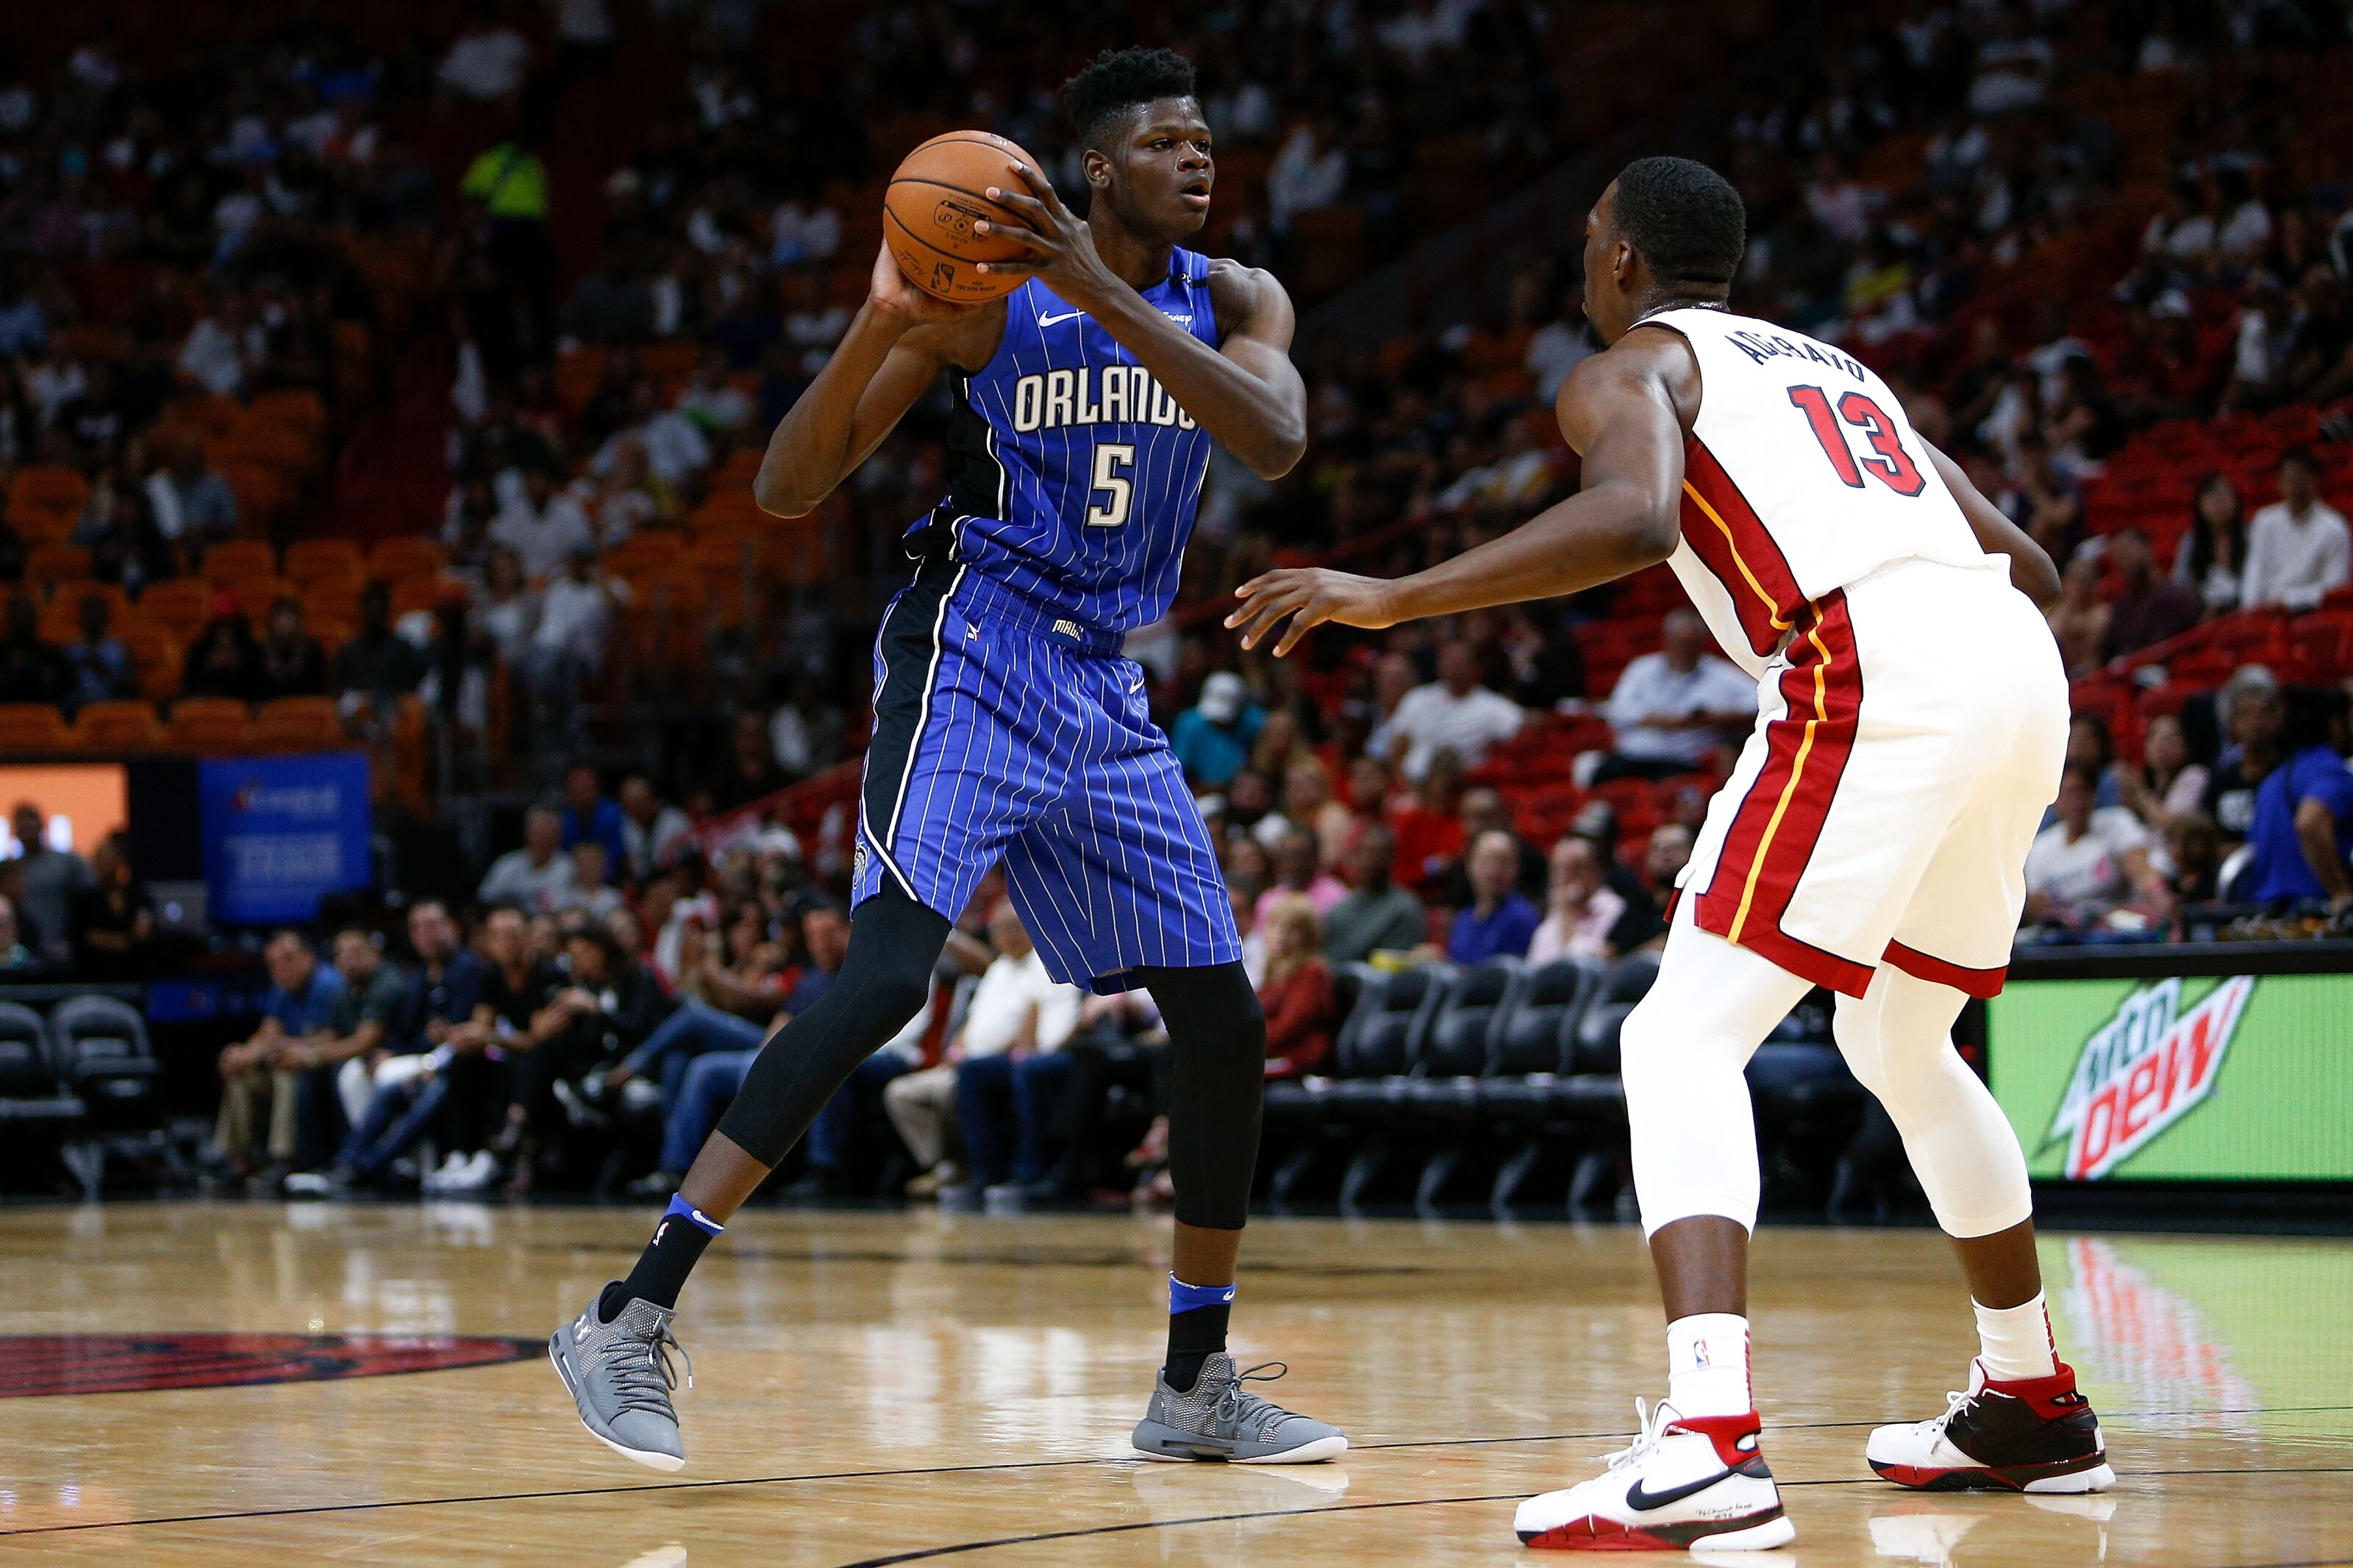 Mohamed Bamba's future for Orlando Magic depends on his shooting